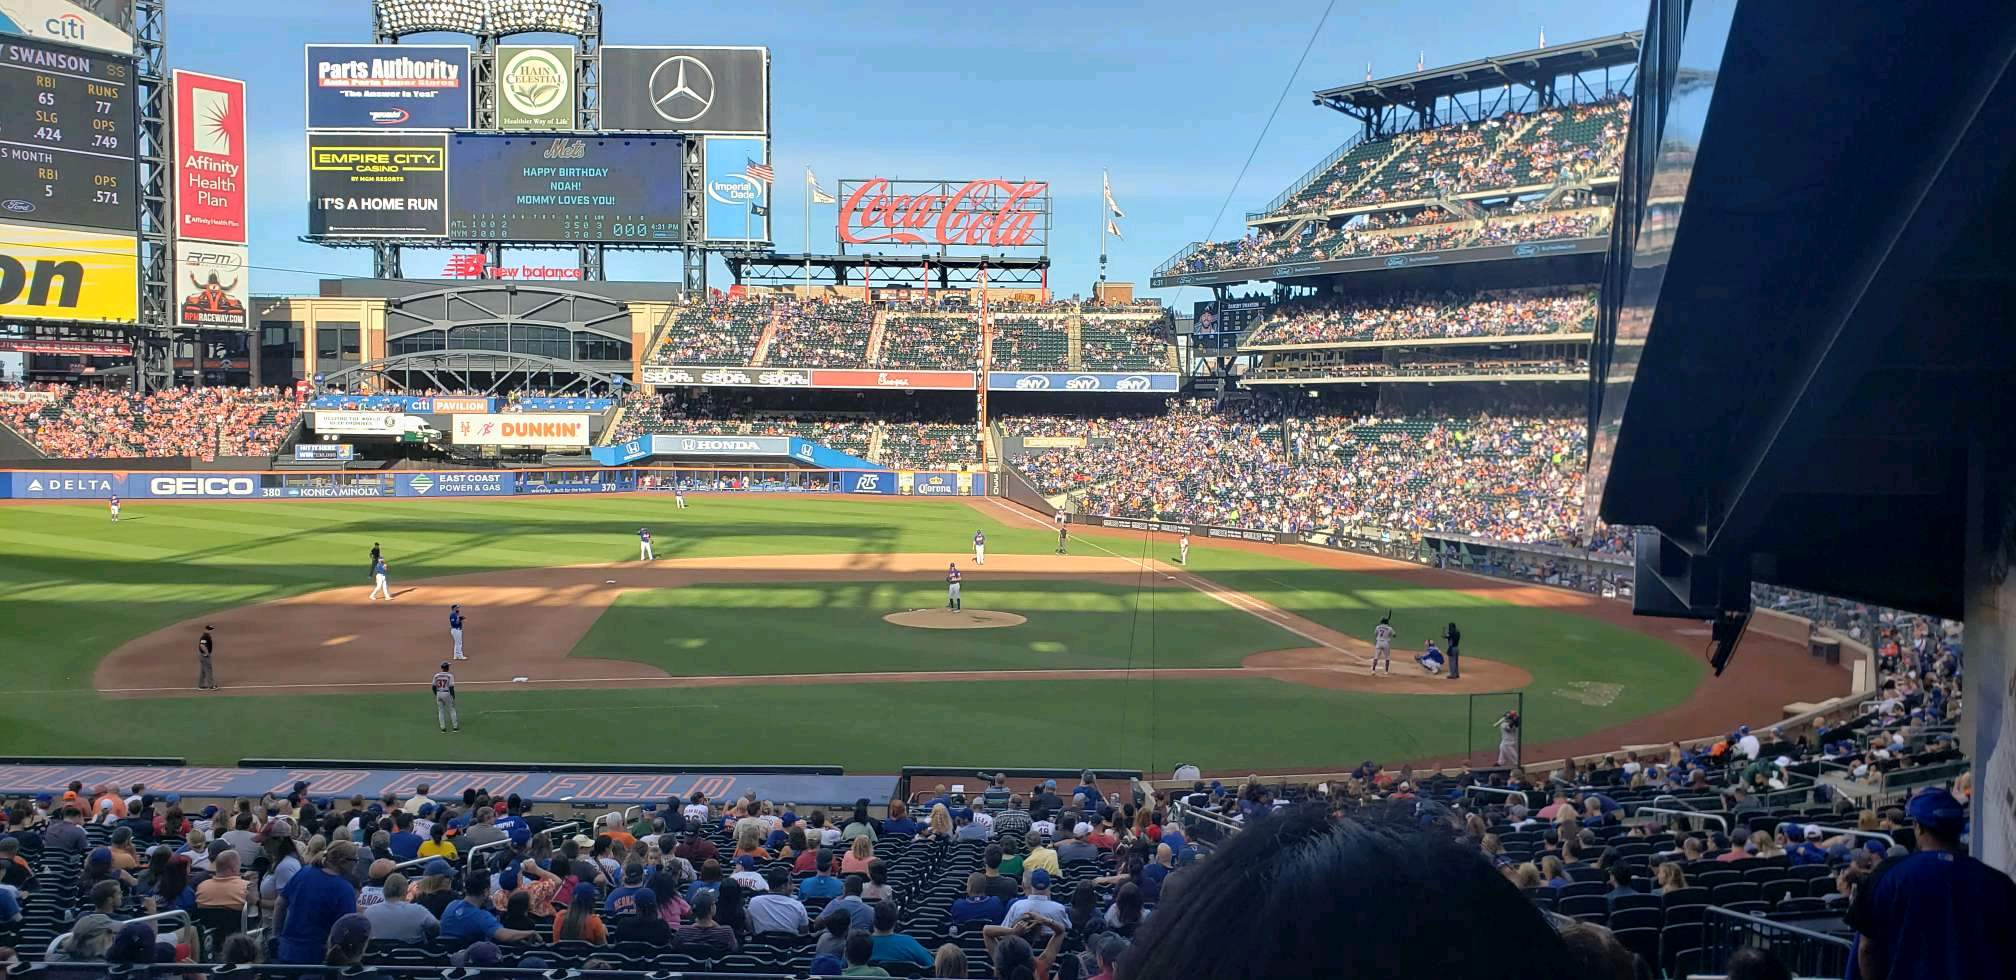 Citi Field Section 121 Row 31 Seat 3